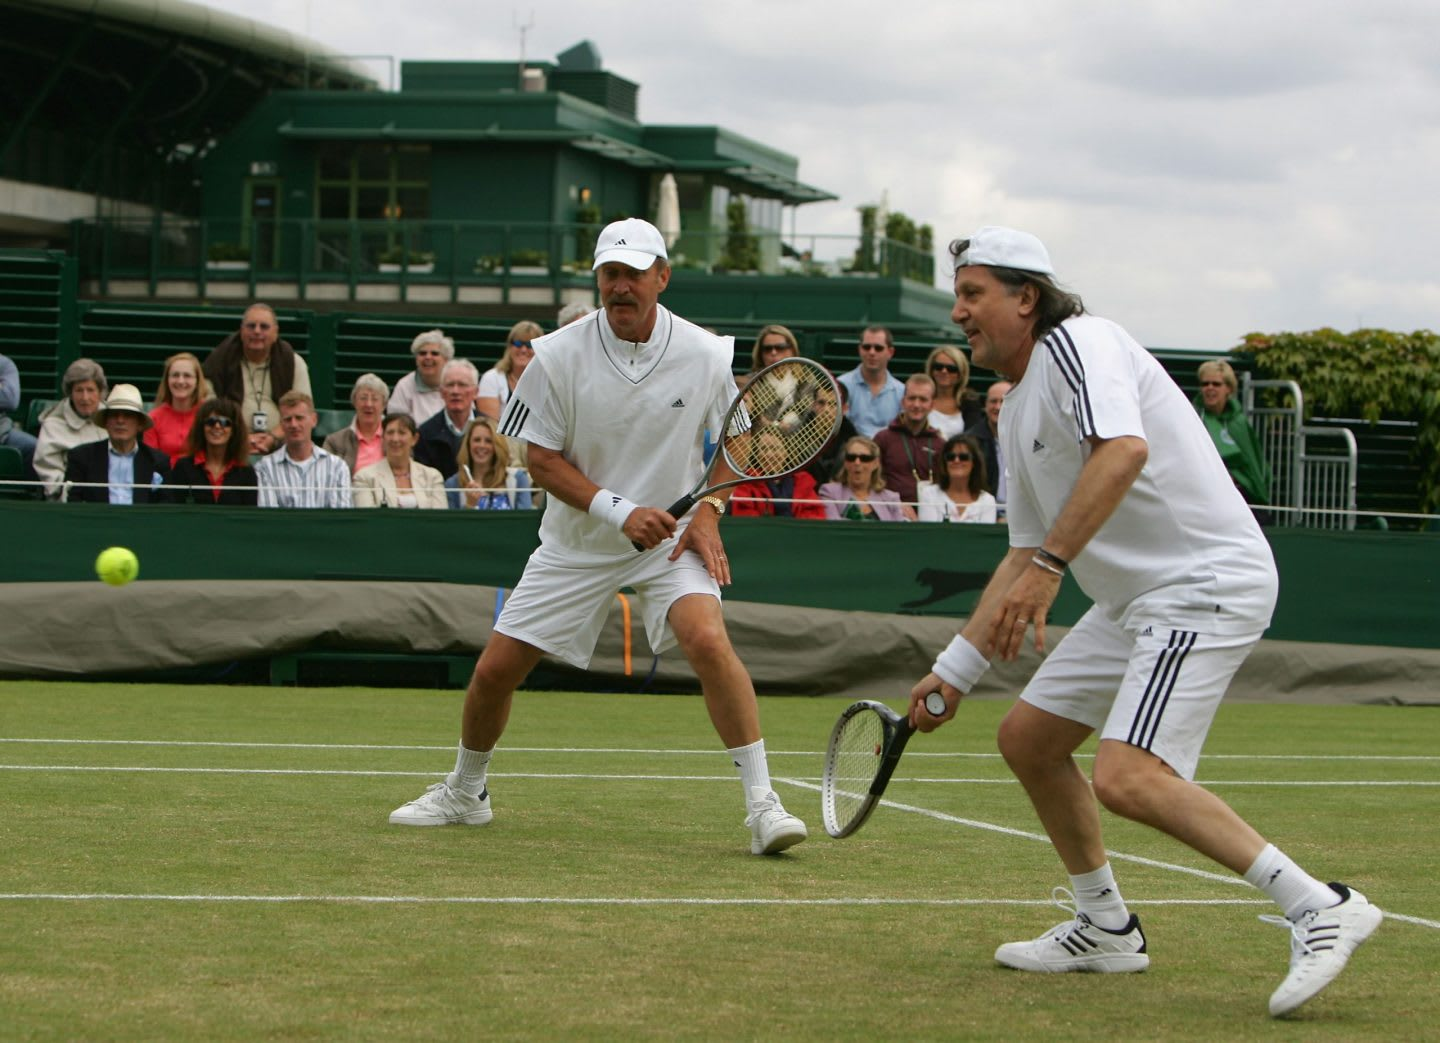 Two men playing a doubles game in tennis on a court, Stan Smith, Ilie Nastase, tennis, athlete, athletes, sports, sport, London,